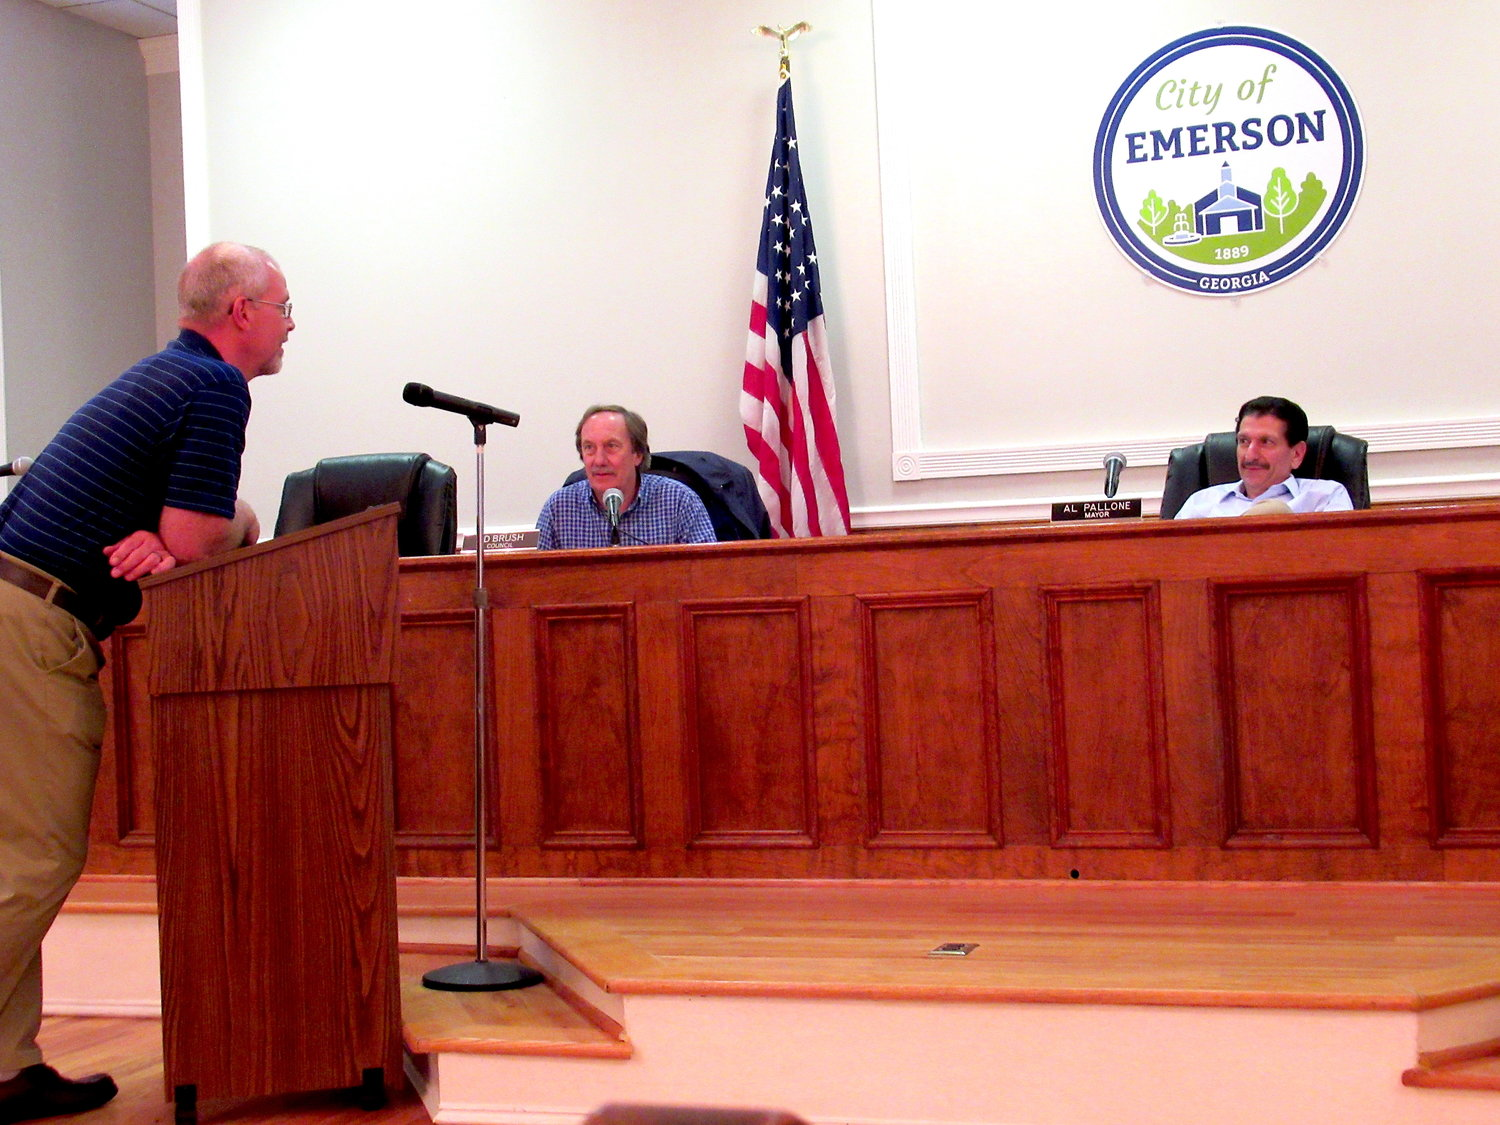 Emerson City Manager Kevin McBurnett takes to the podium at Monday's Emerson City Council meeting, with Councilman Ed Brush and Mayor Al Pallone in the background.